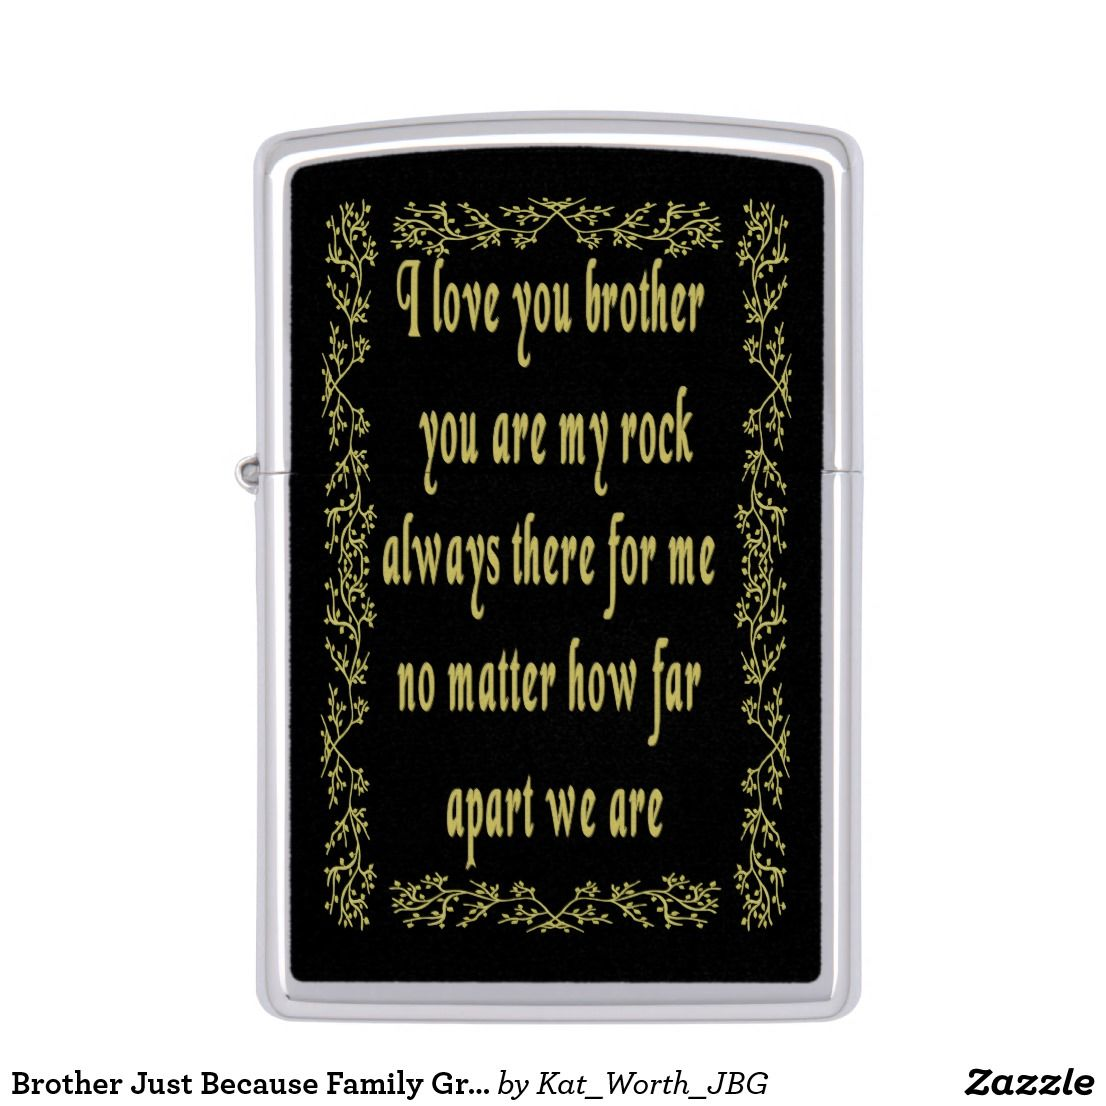 Brother Just Because Family Greeting And Gifts By Kat Worth Bro